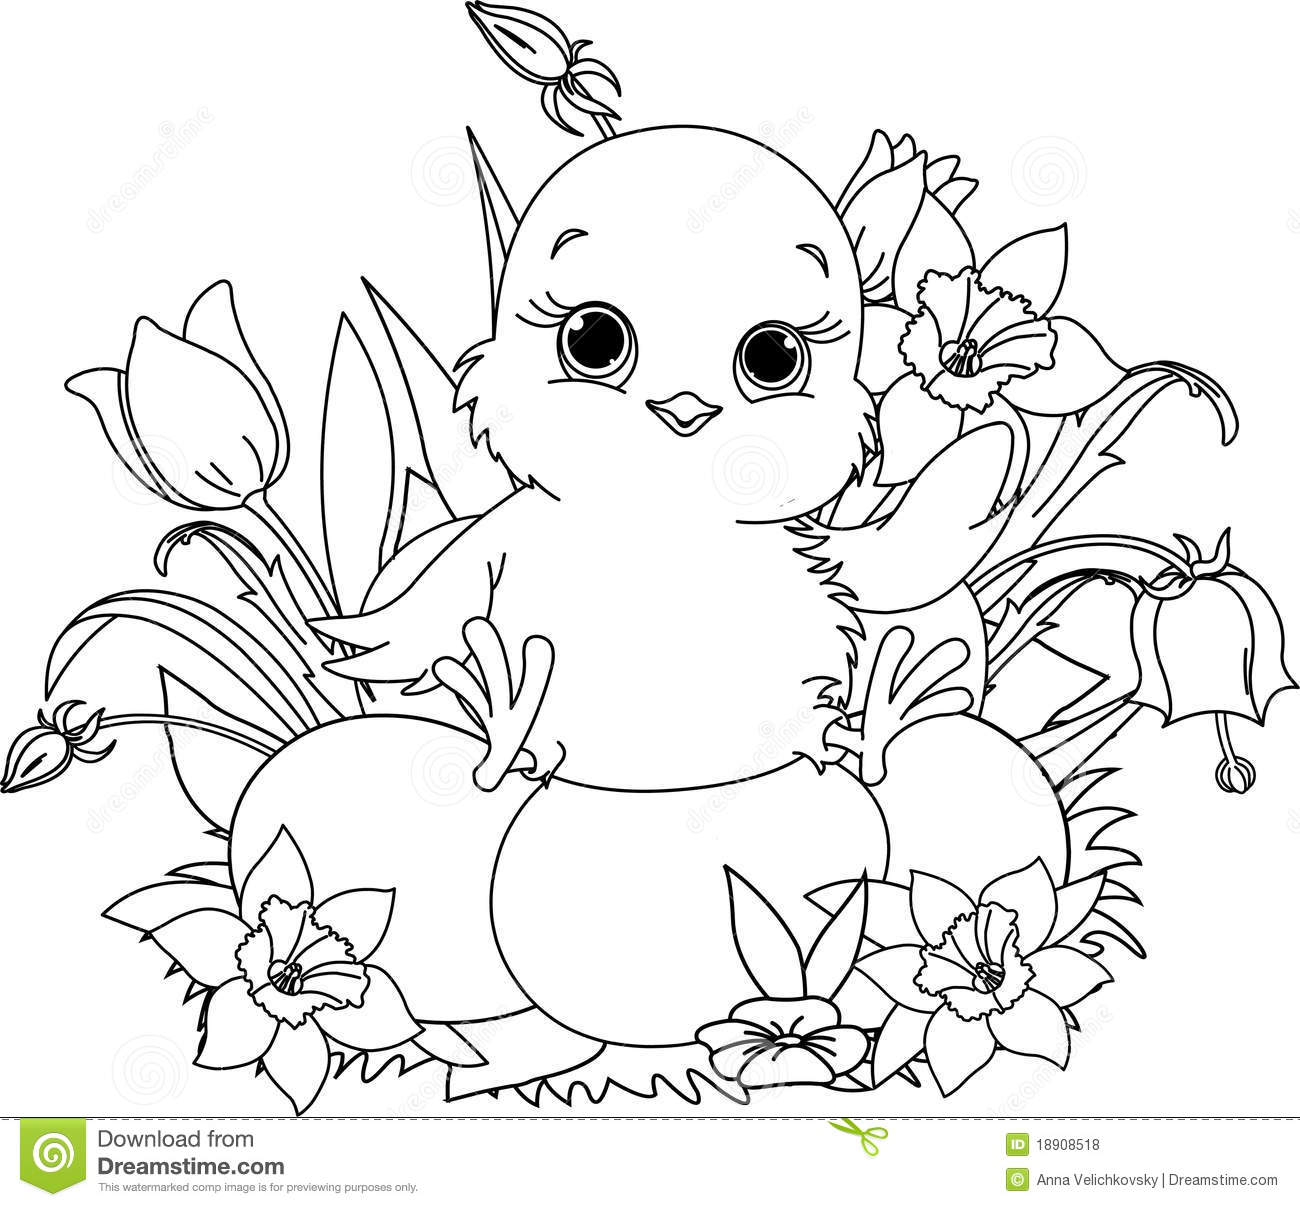 Stunning Easter Chicks Coloring Pages Ideas Coloring Page Design